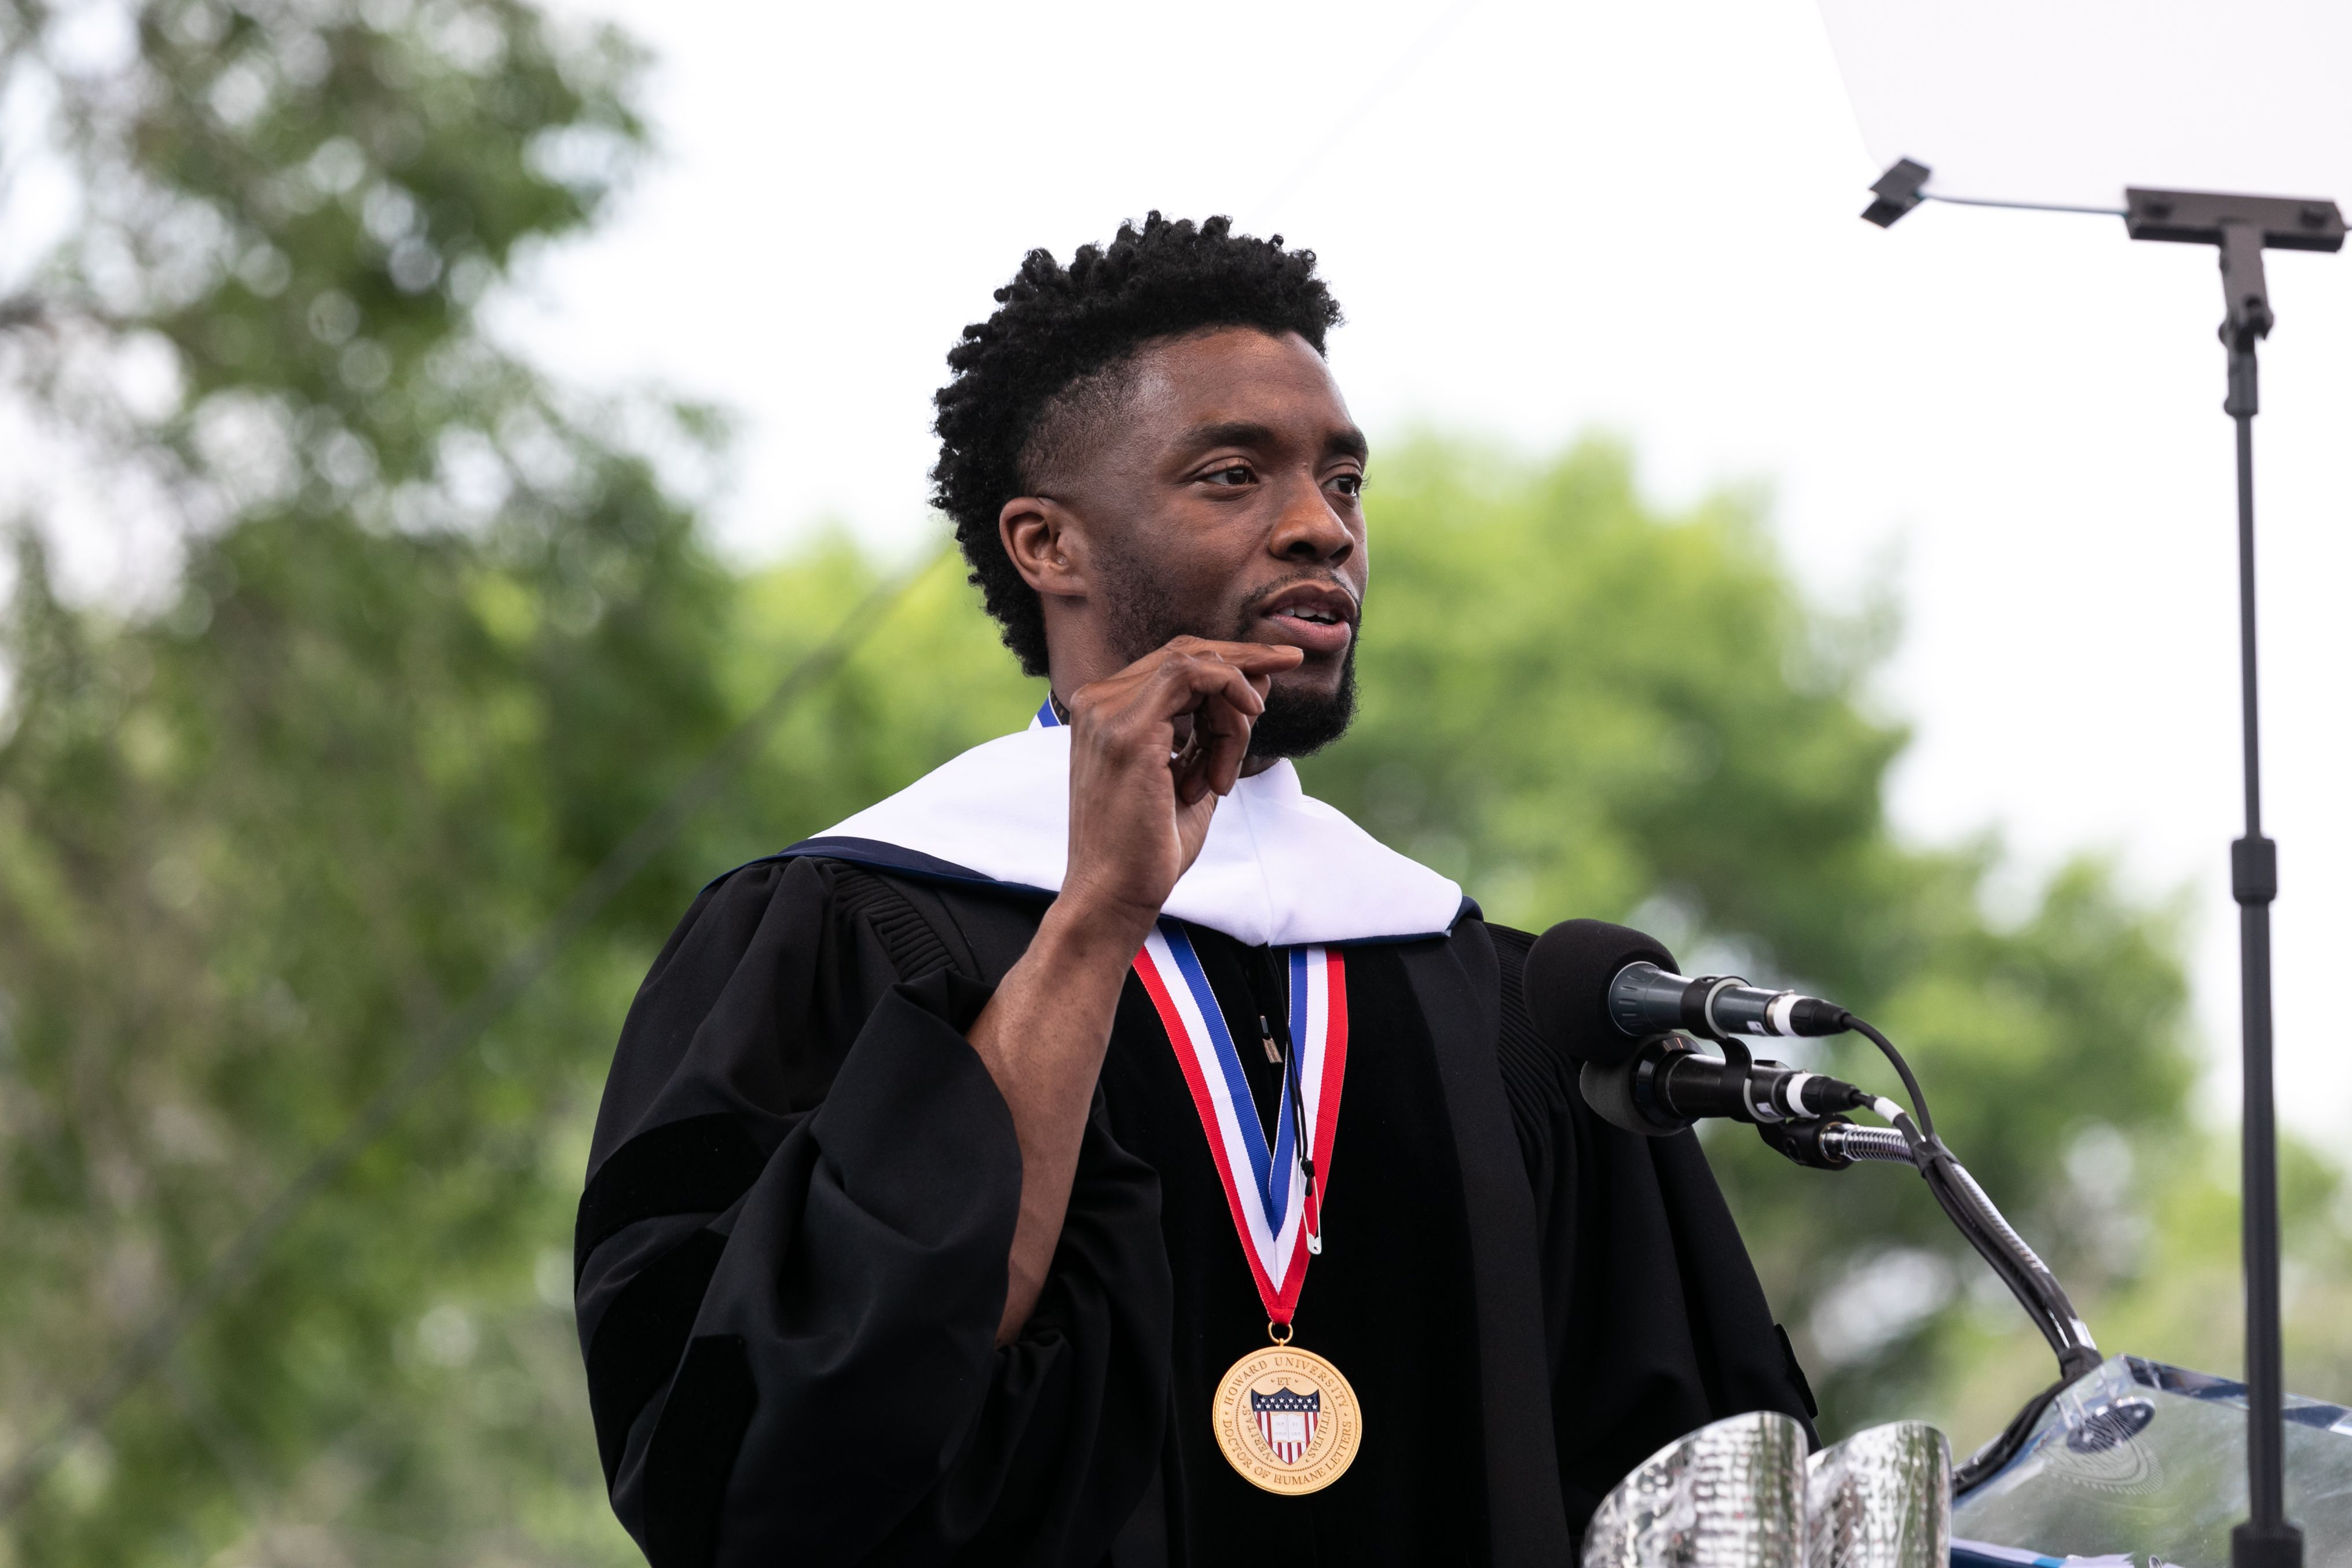 inspirational graduation quotes from commencement speeches